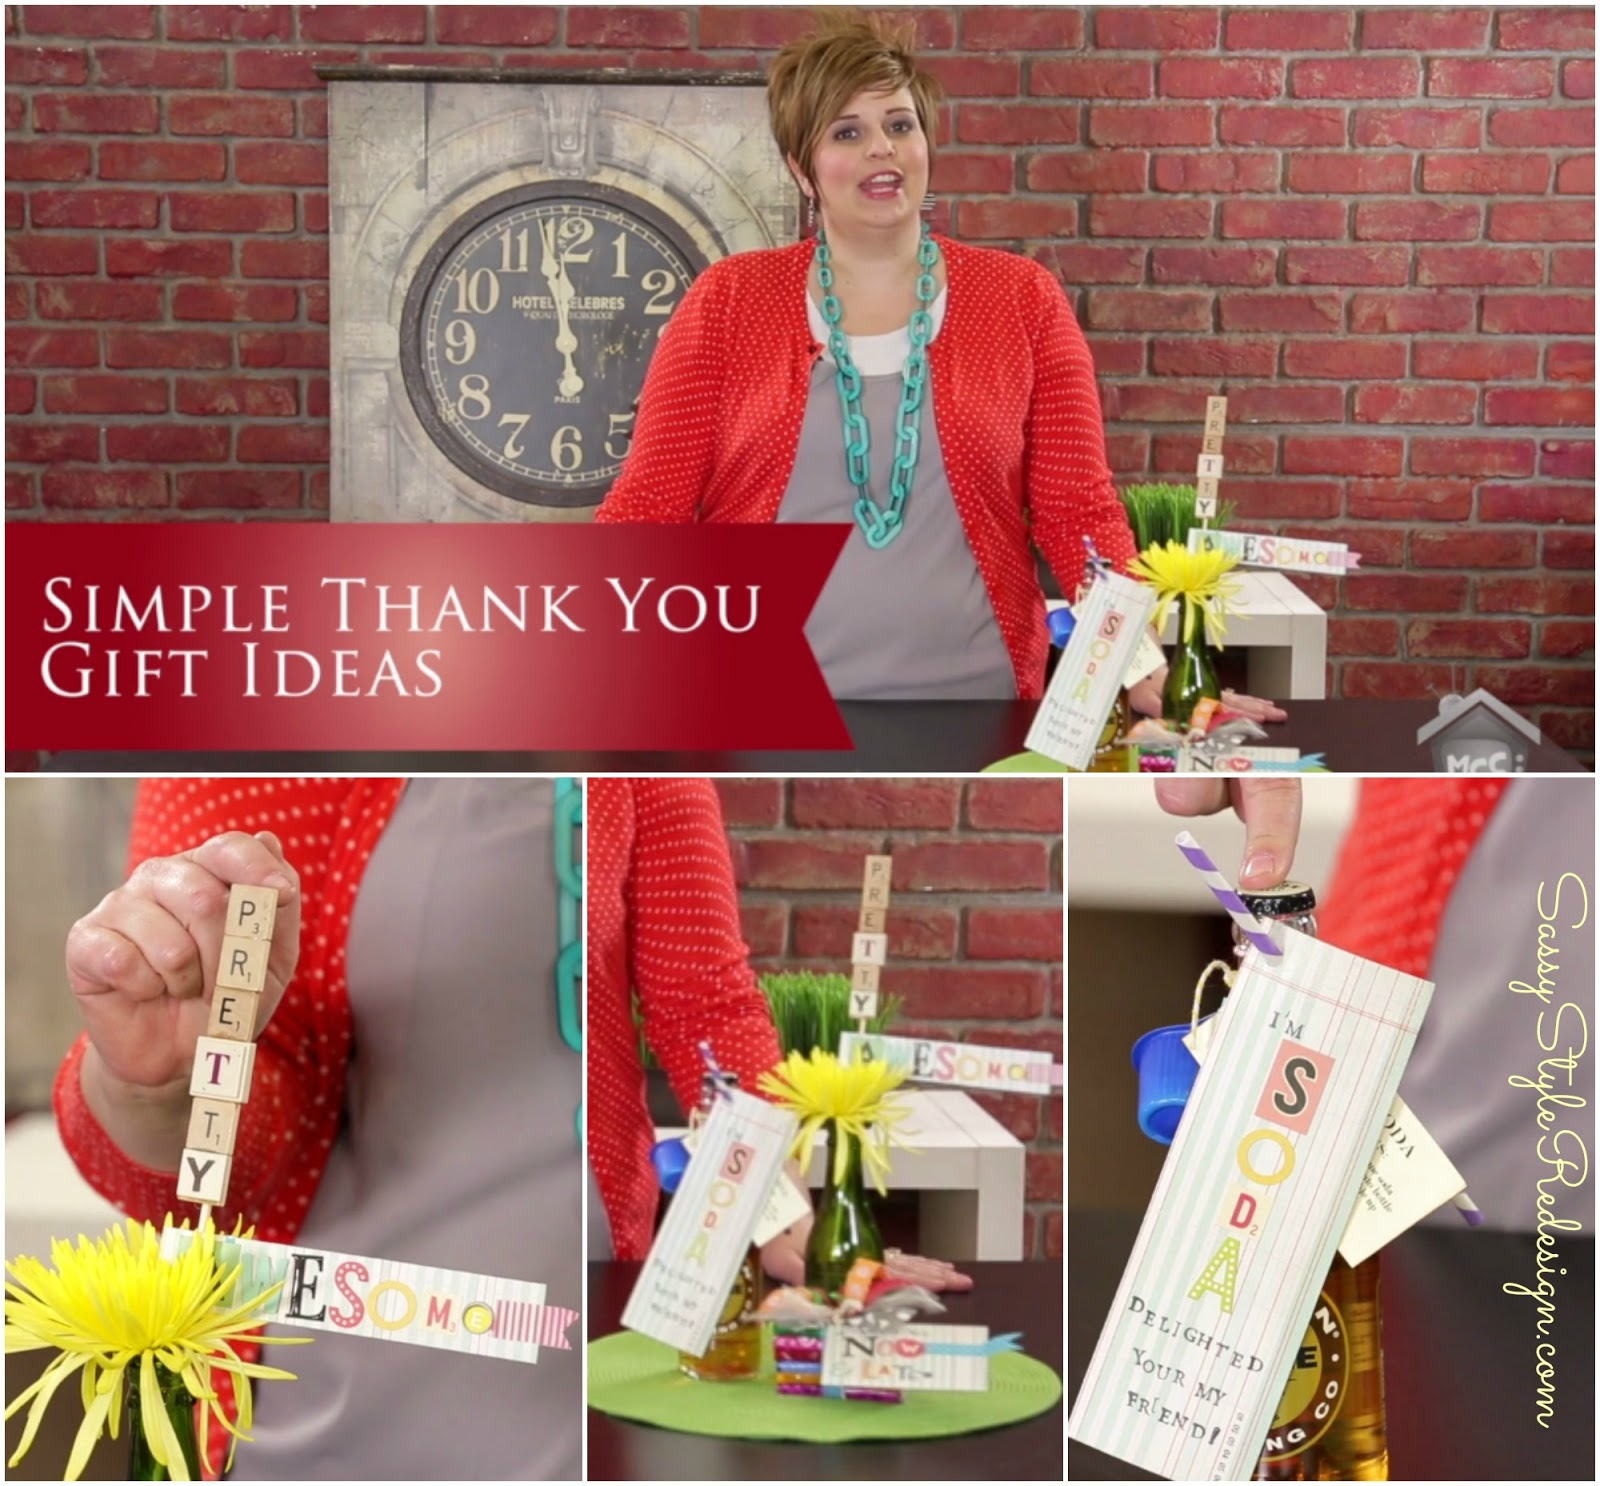 Gift Ideas Real Log Style: My Craft Channel: July 28th: Sassy Style Thank You Gifts